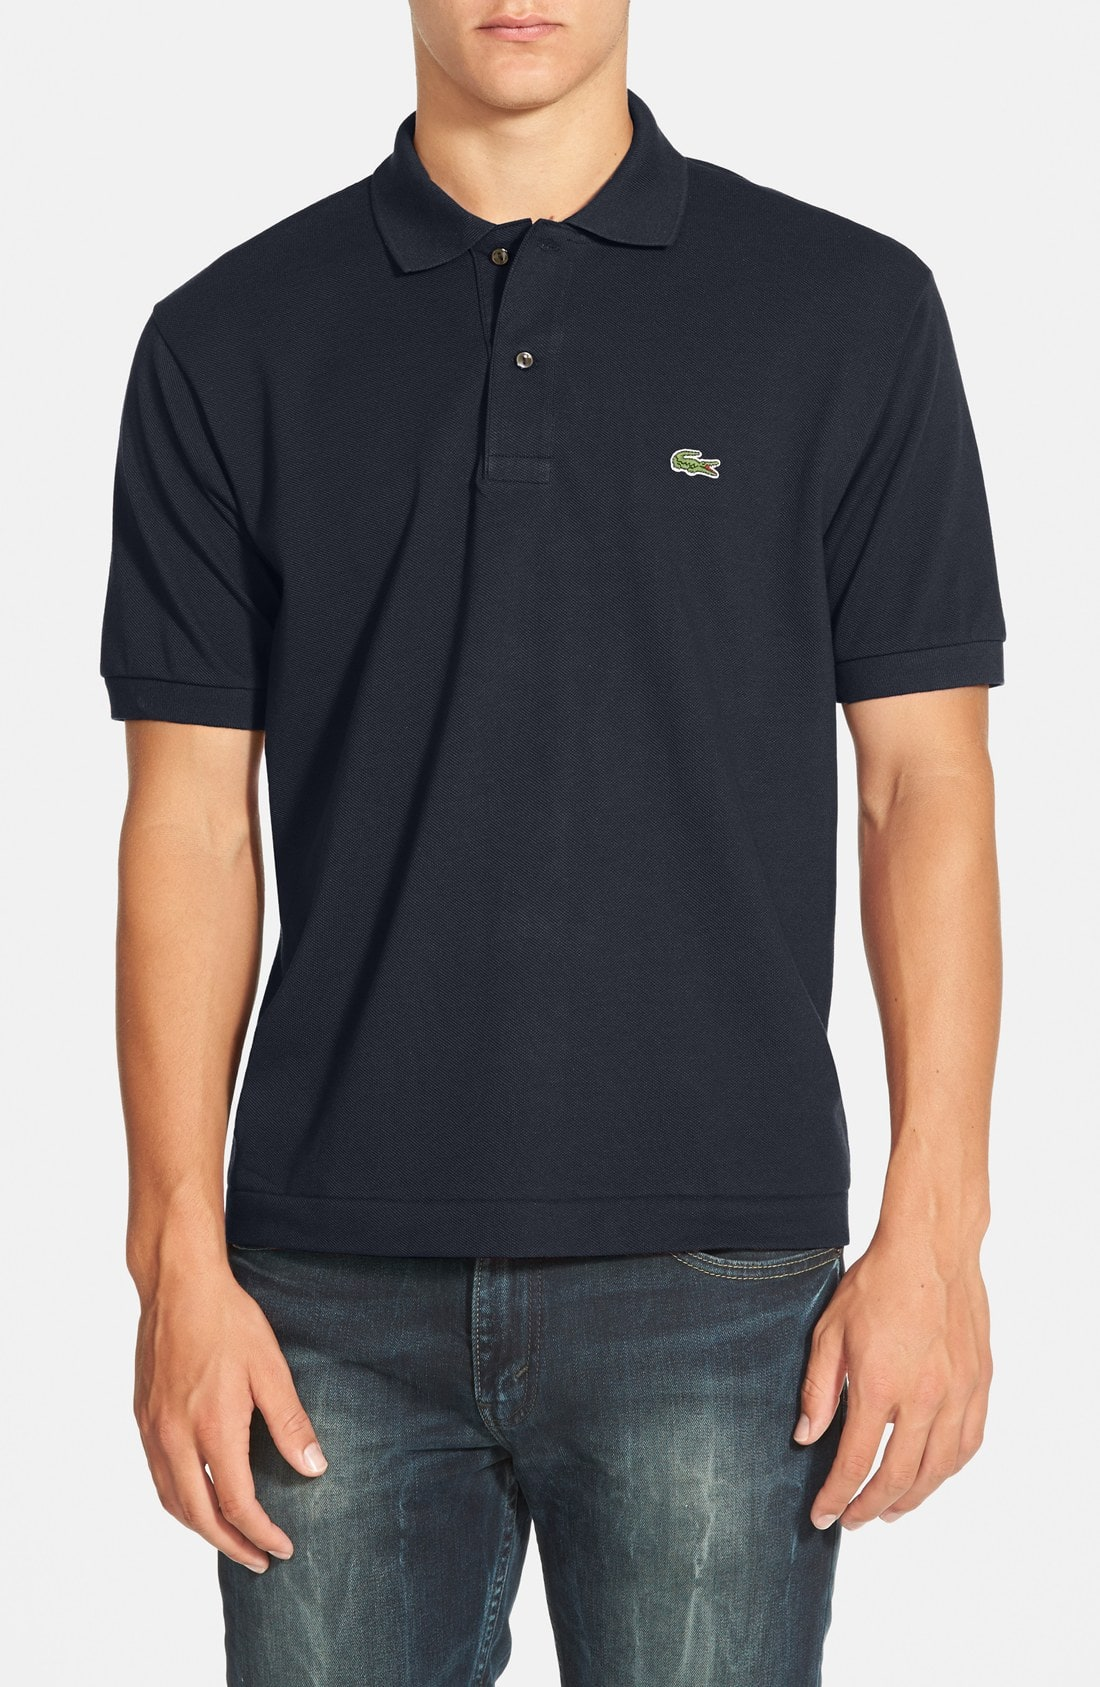 Men's Polo Shirts | Nordstrom